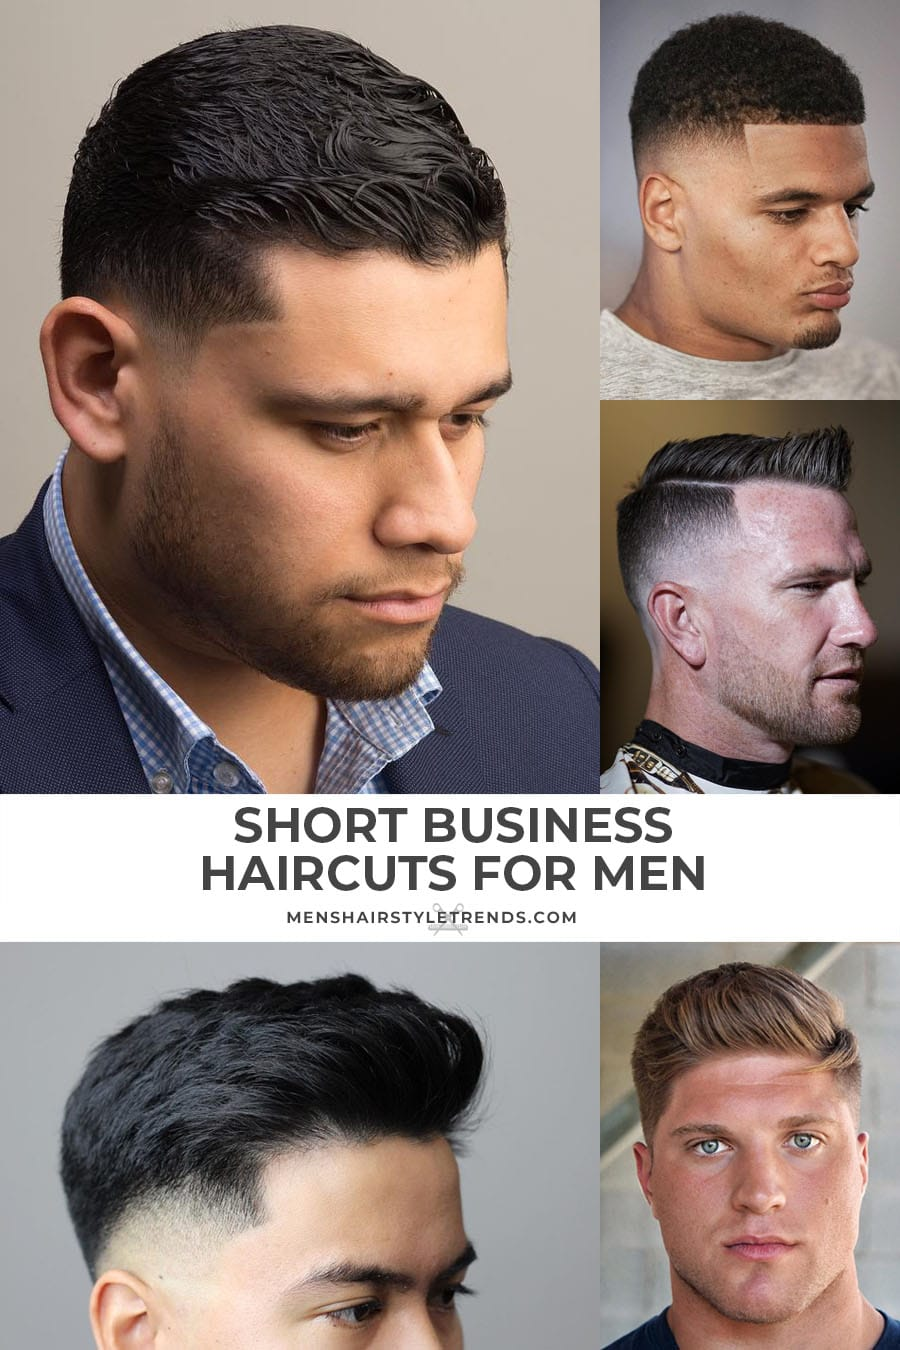 Short haircuts for business men and professional guys